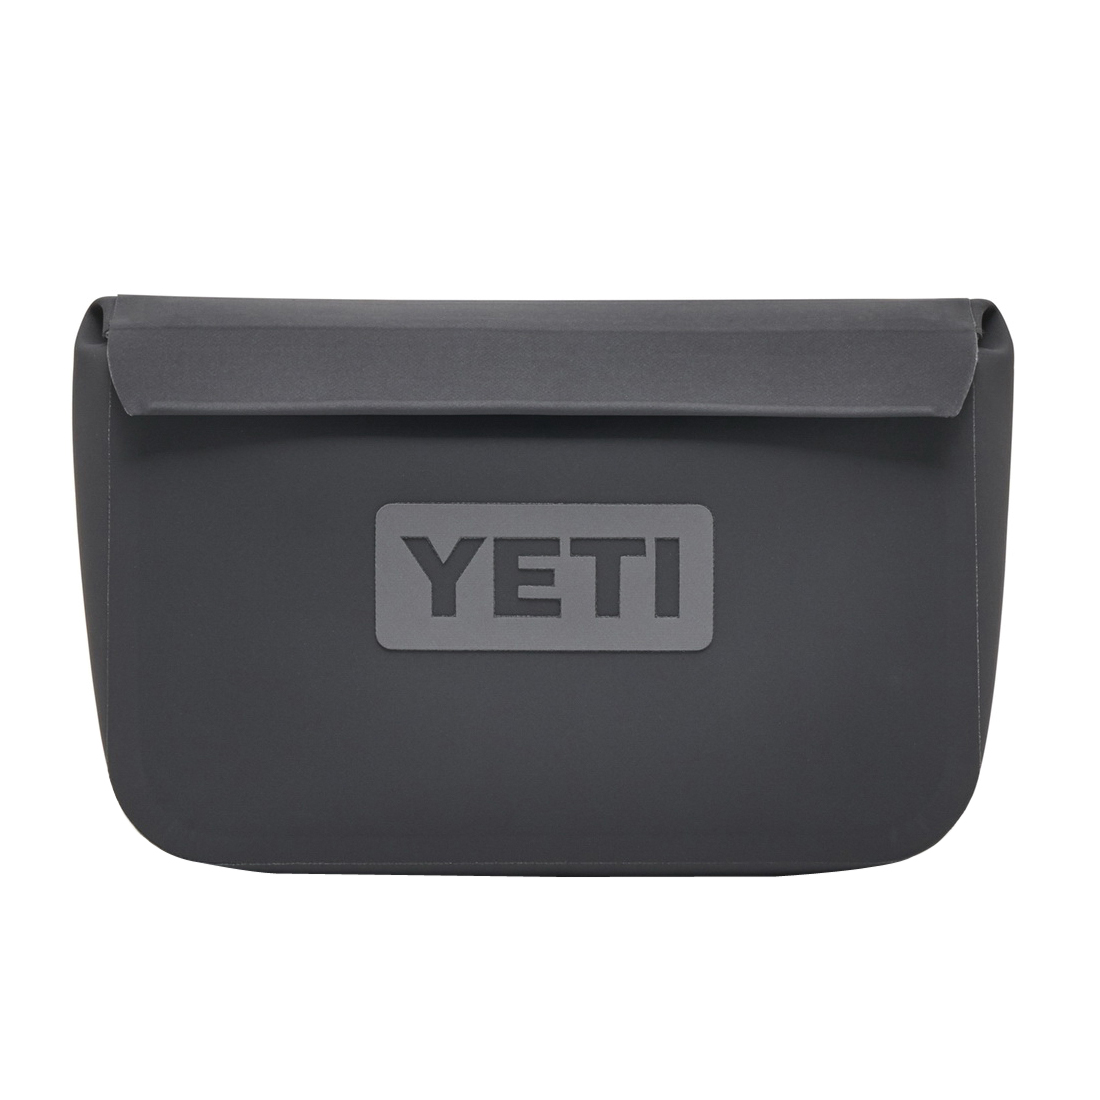 Picture of YETI Hopper SideKick Dry 18060130018 Bag, DryHide Shell, Charcoal